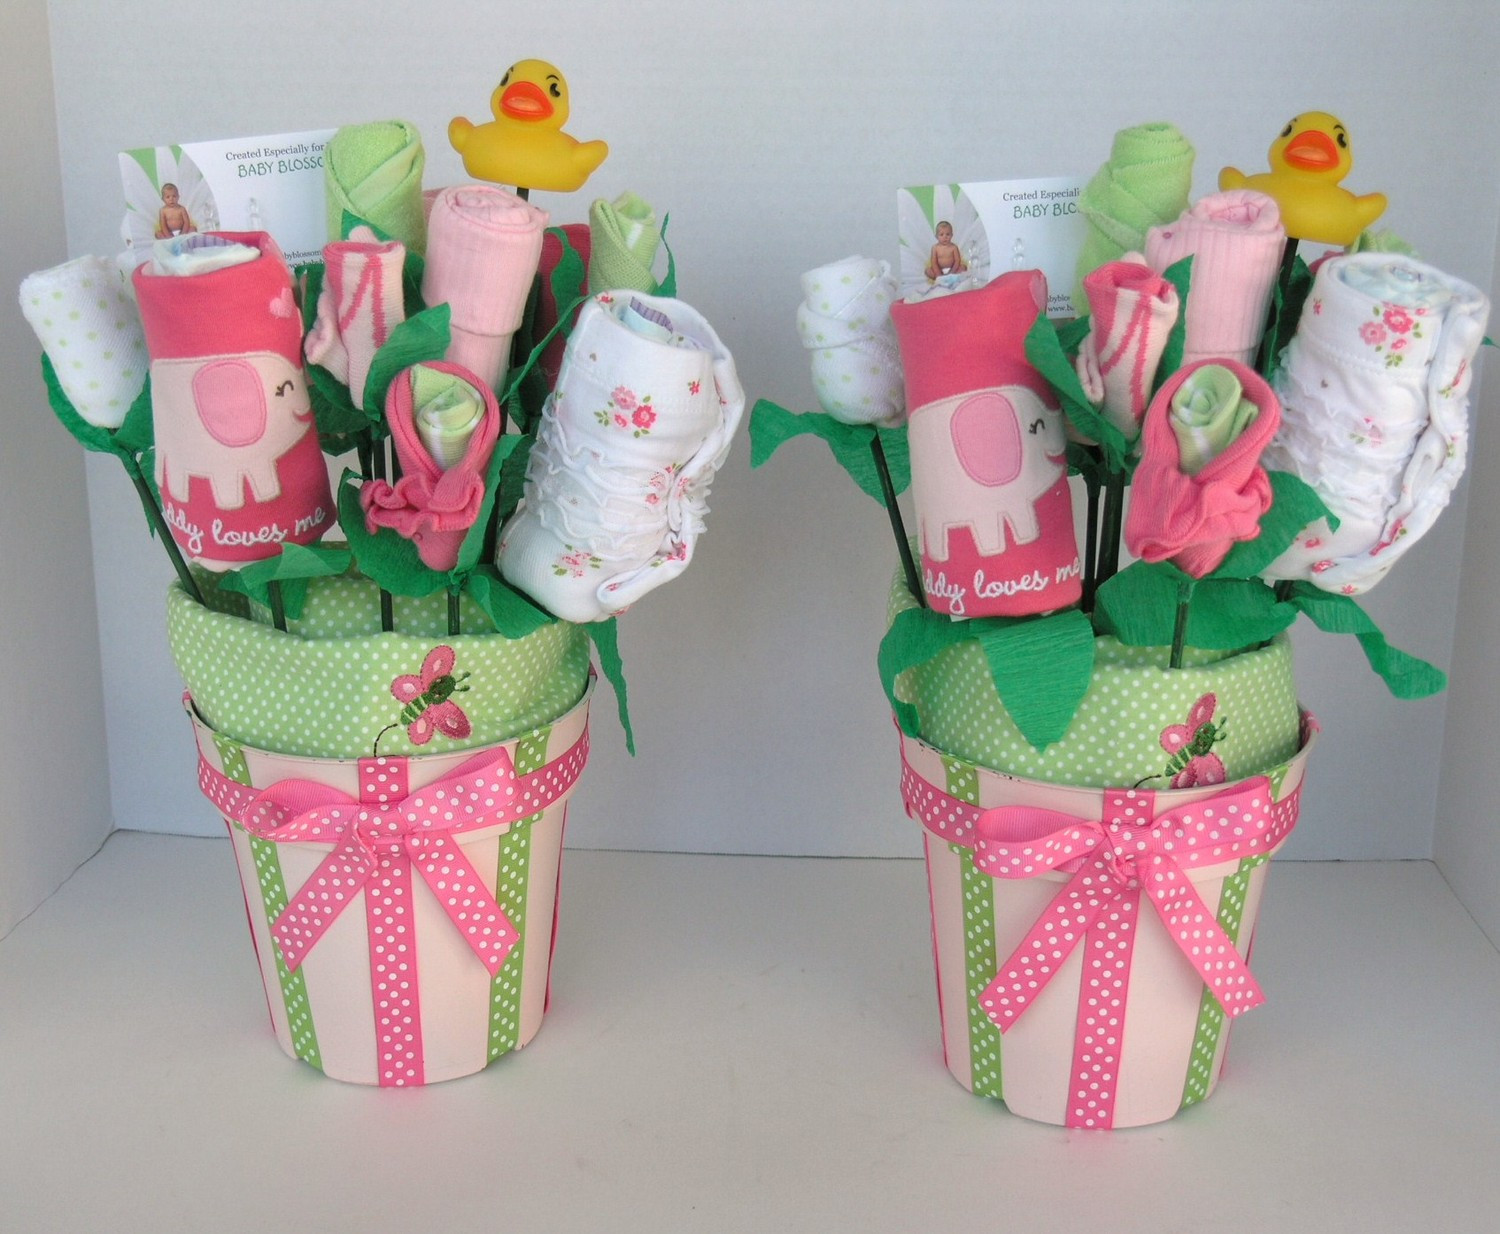 DIY Baby Gift Ideas  Five Best DIY Baby Gifting Ideas for The Little Special